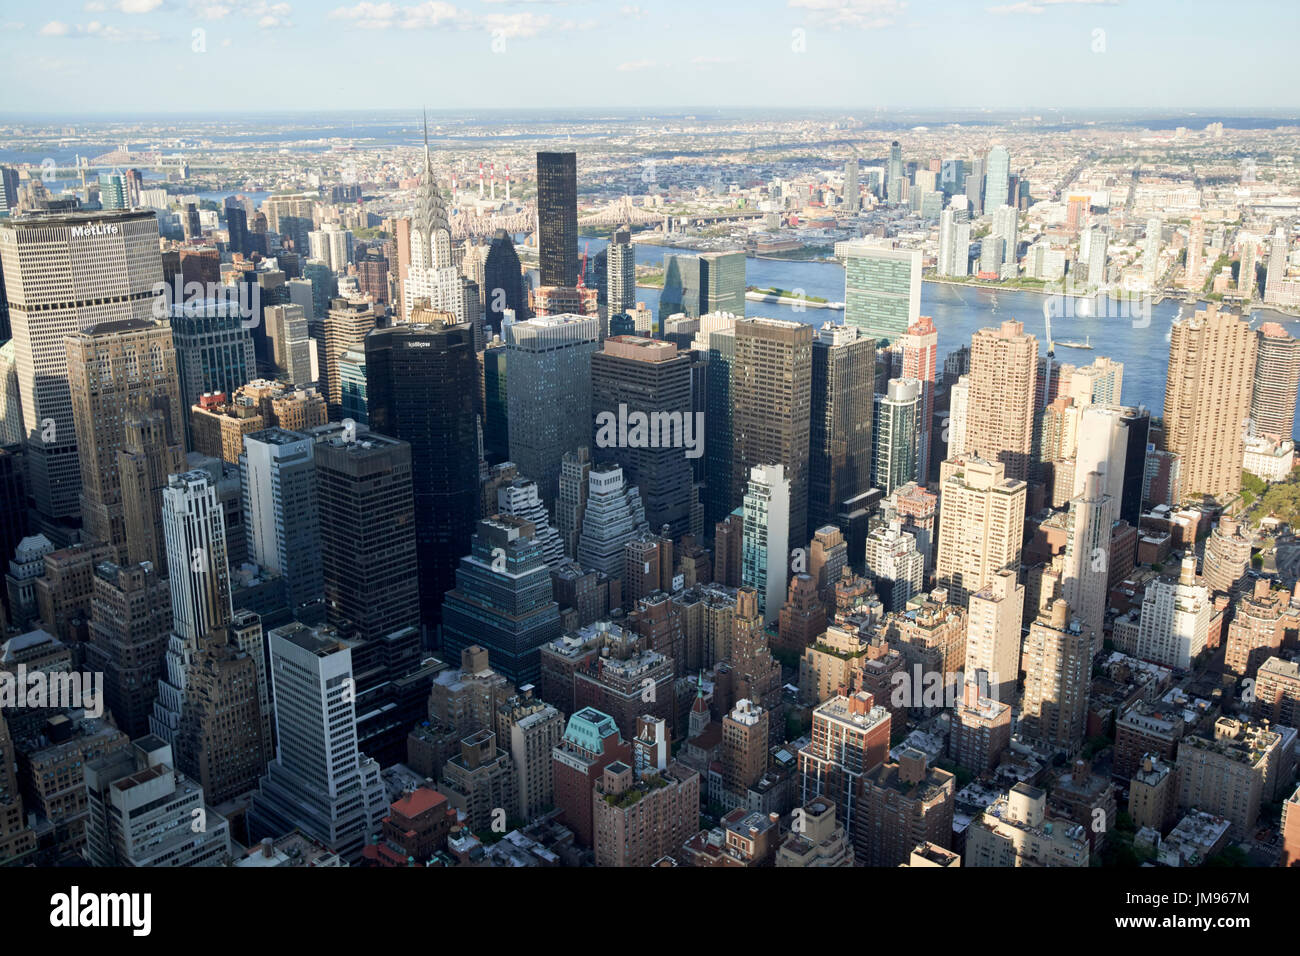 aerial view of New York City murray hill and turtle bay districts USA - Stock Image